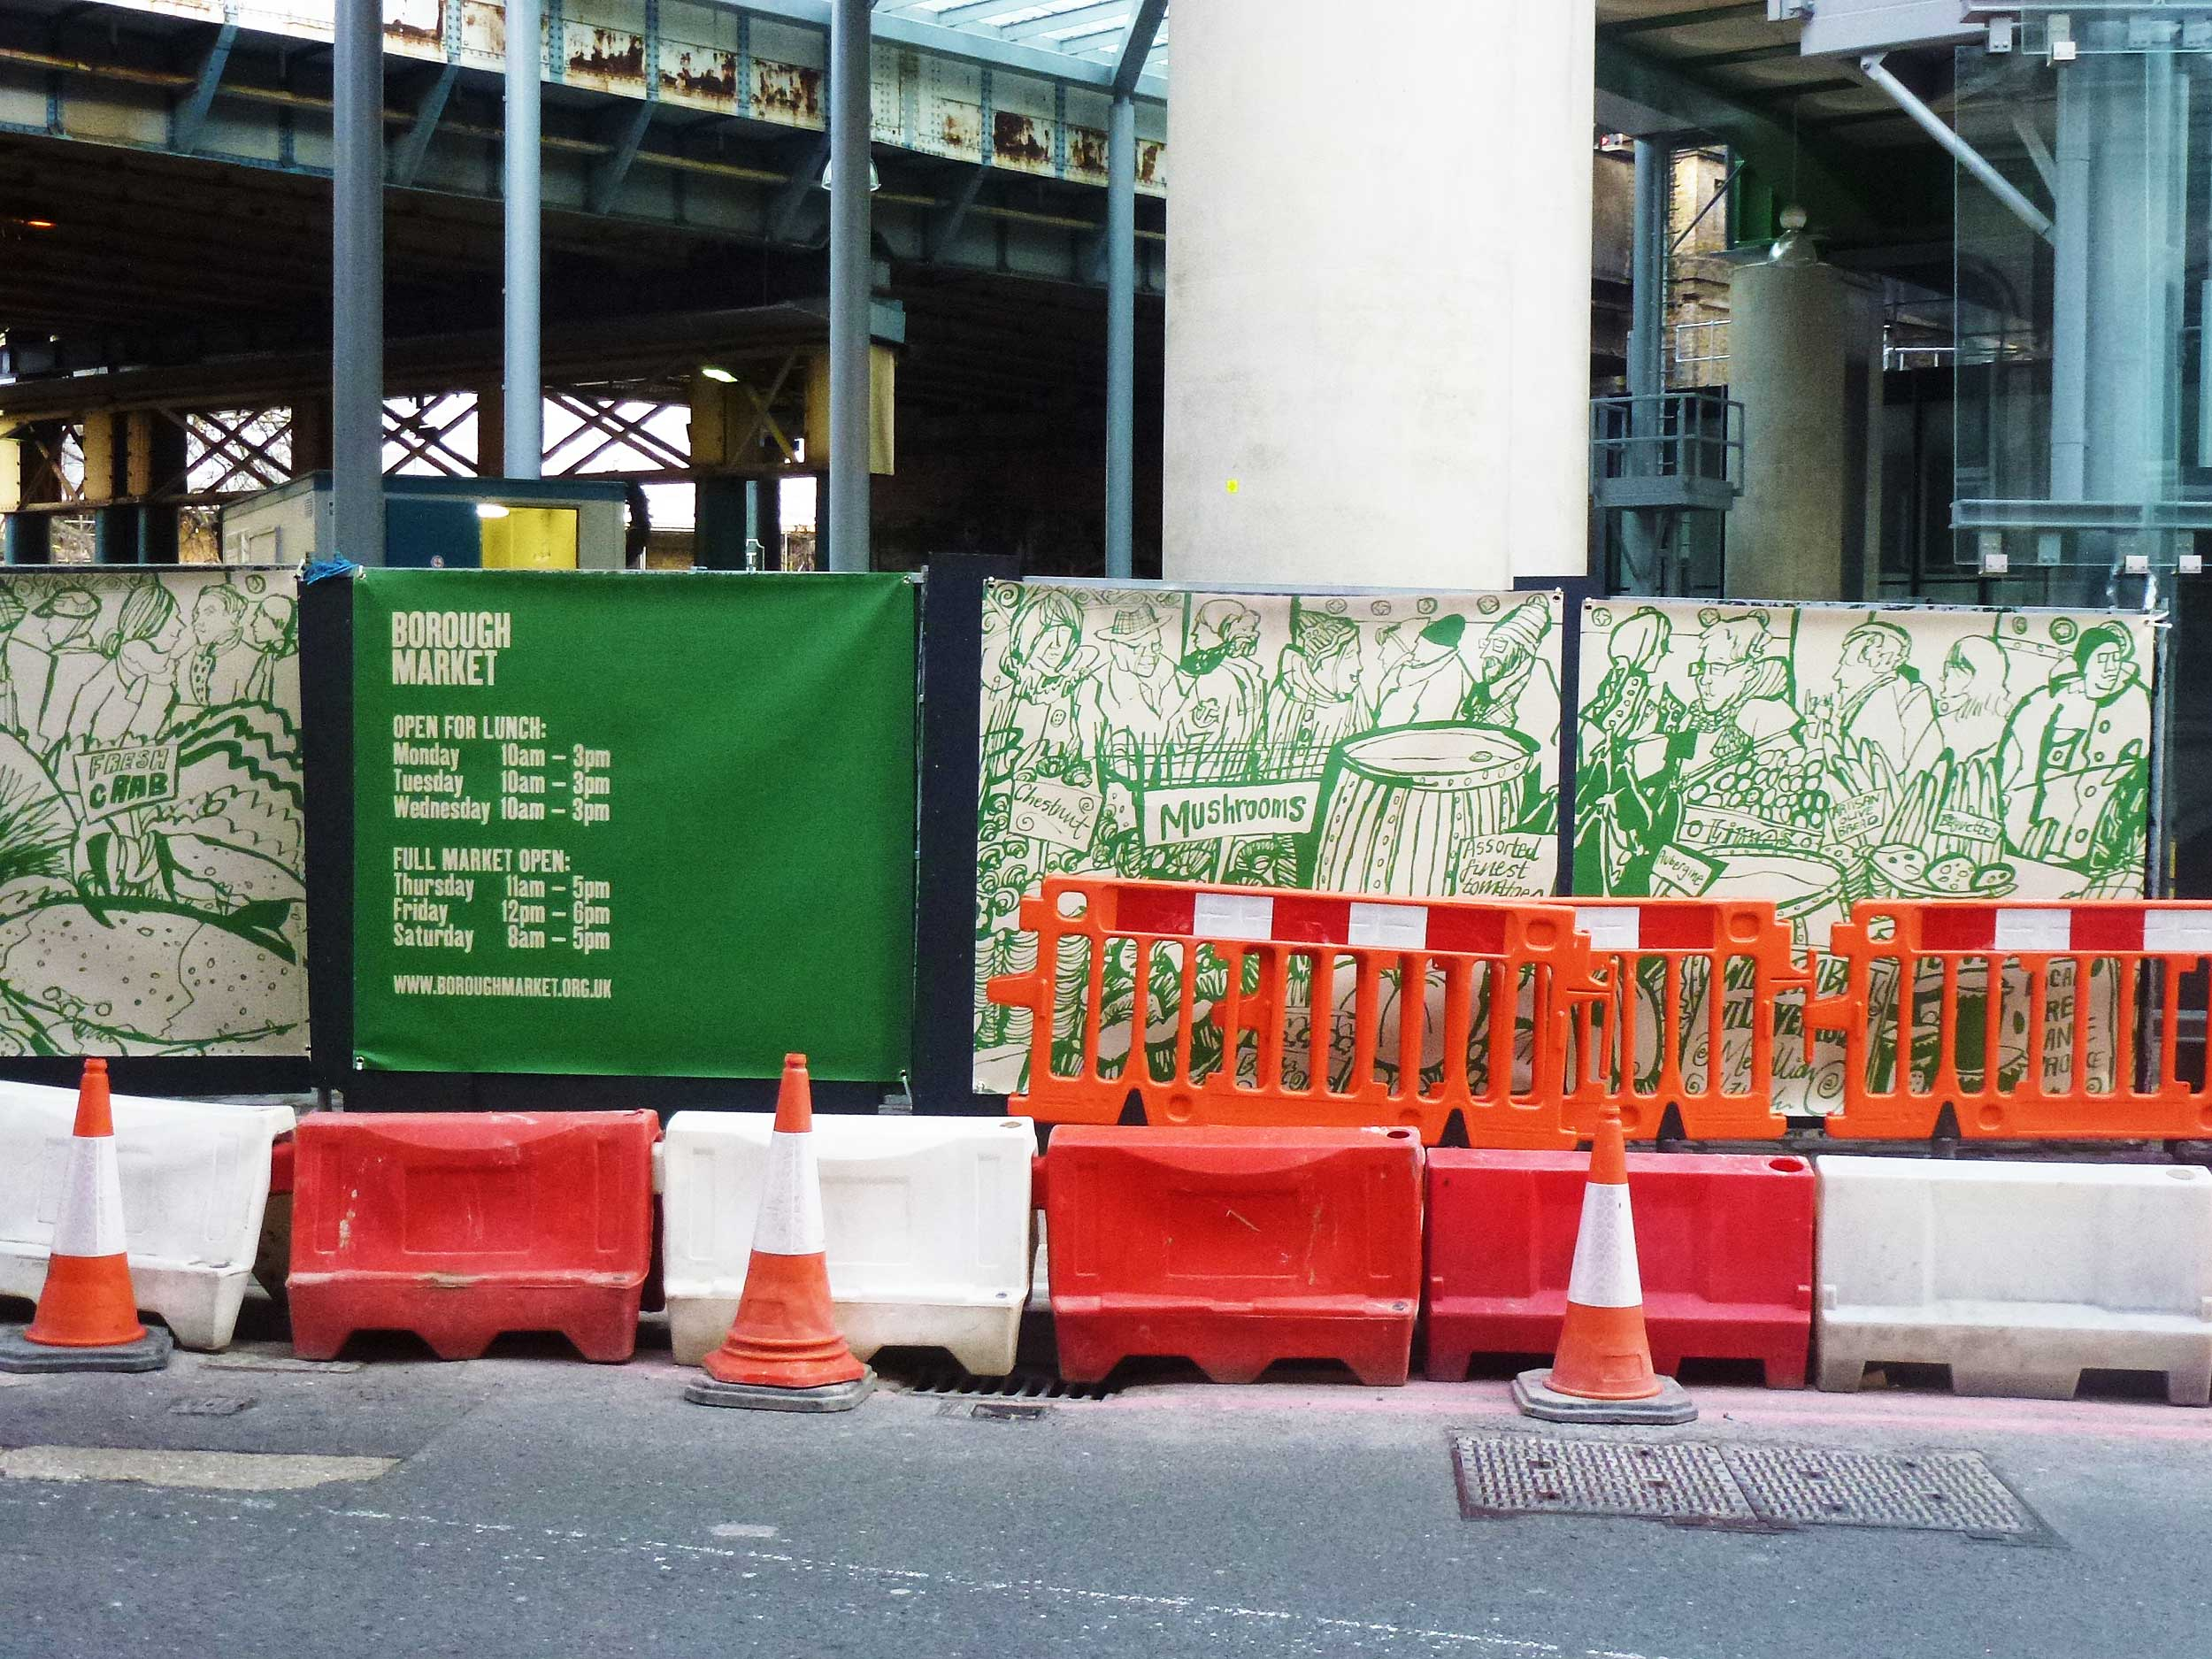 More Borough Market by James Oses, image 3